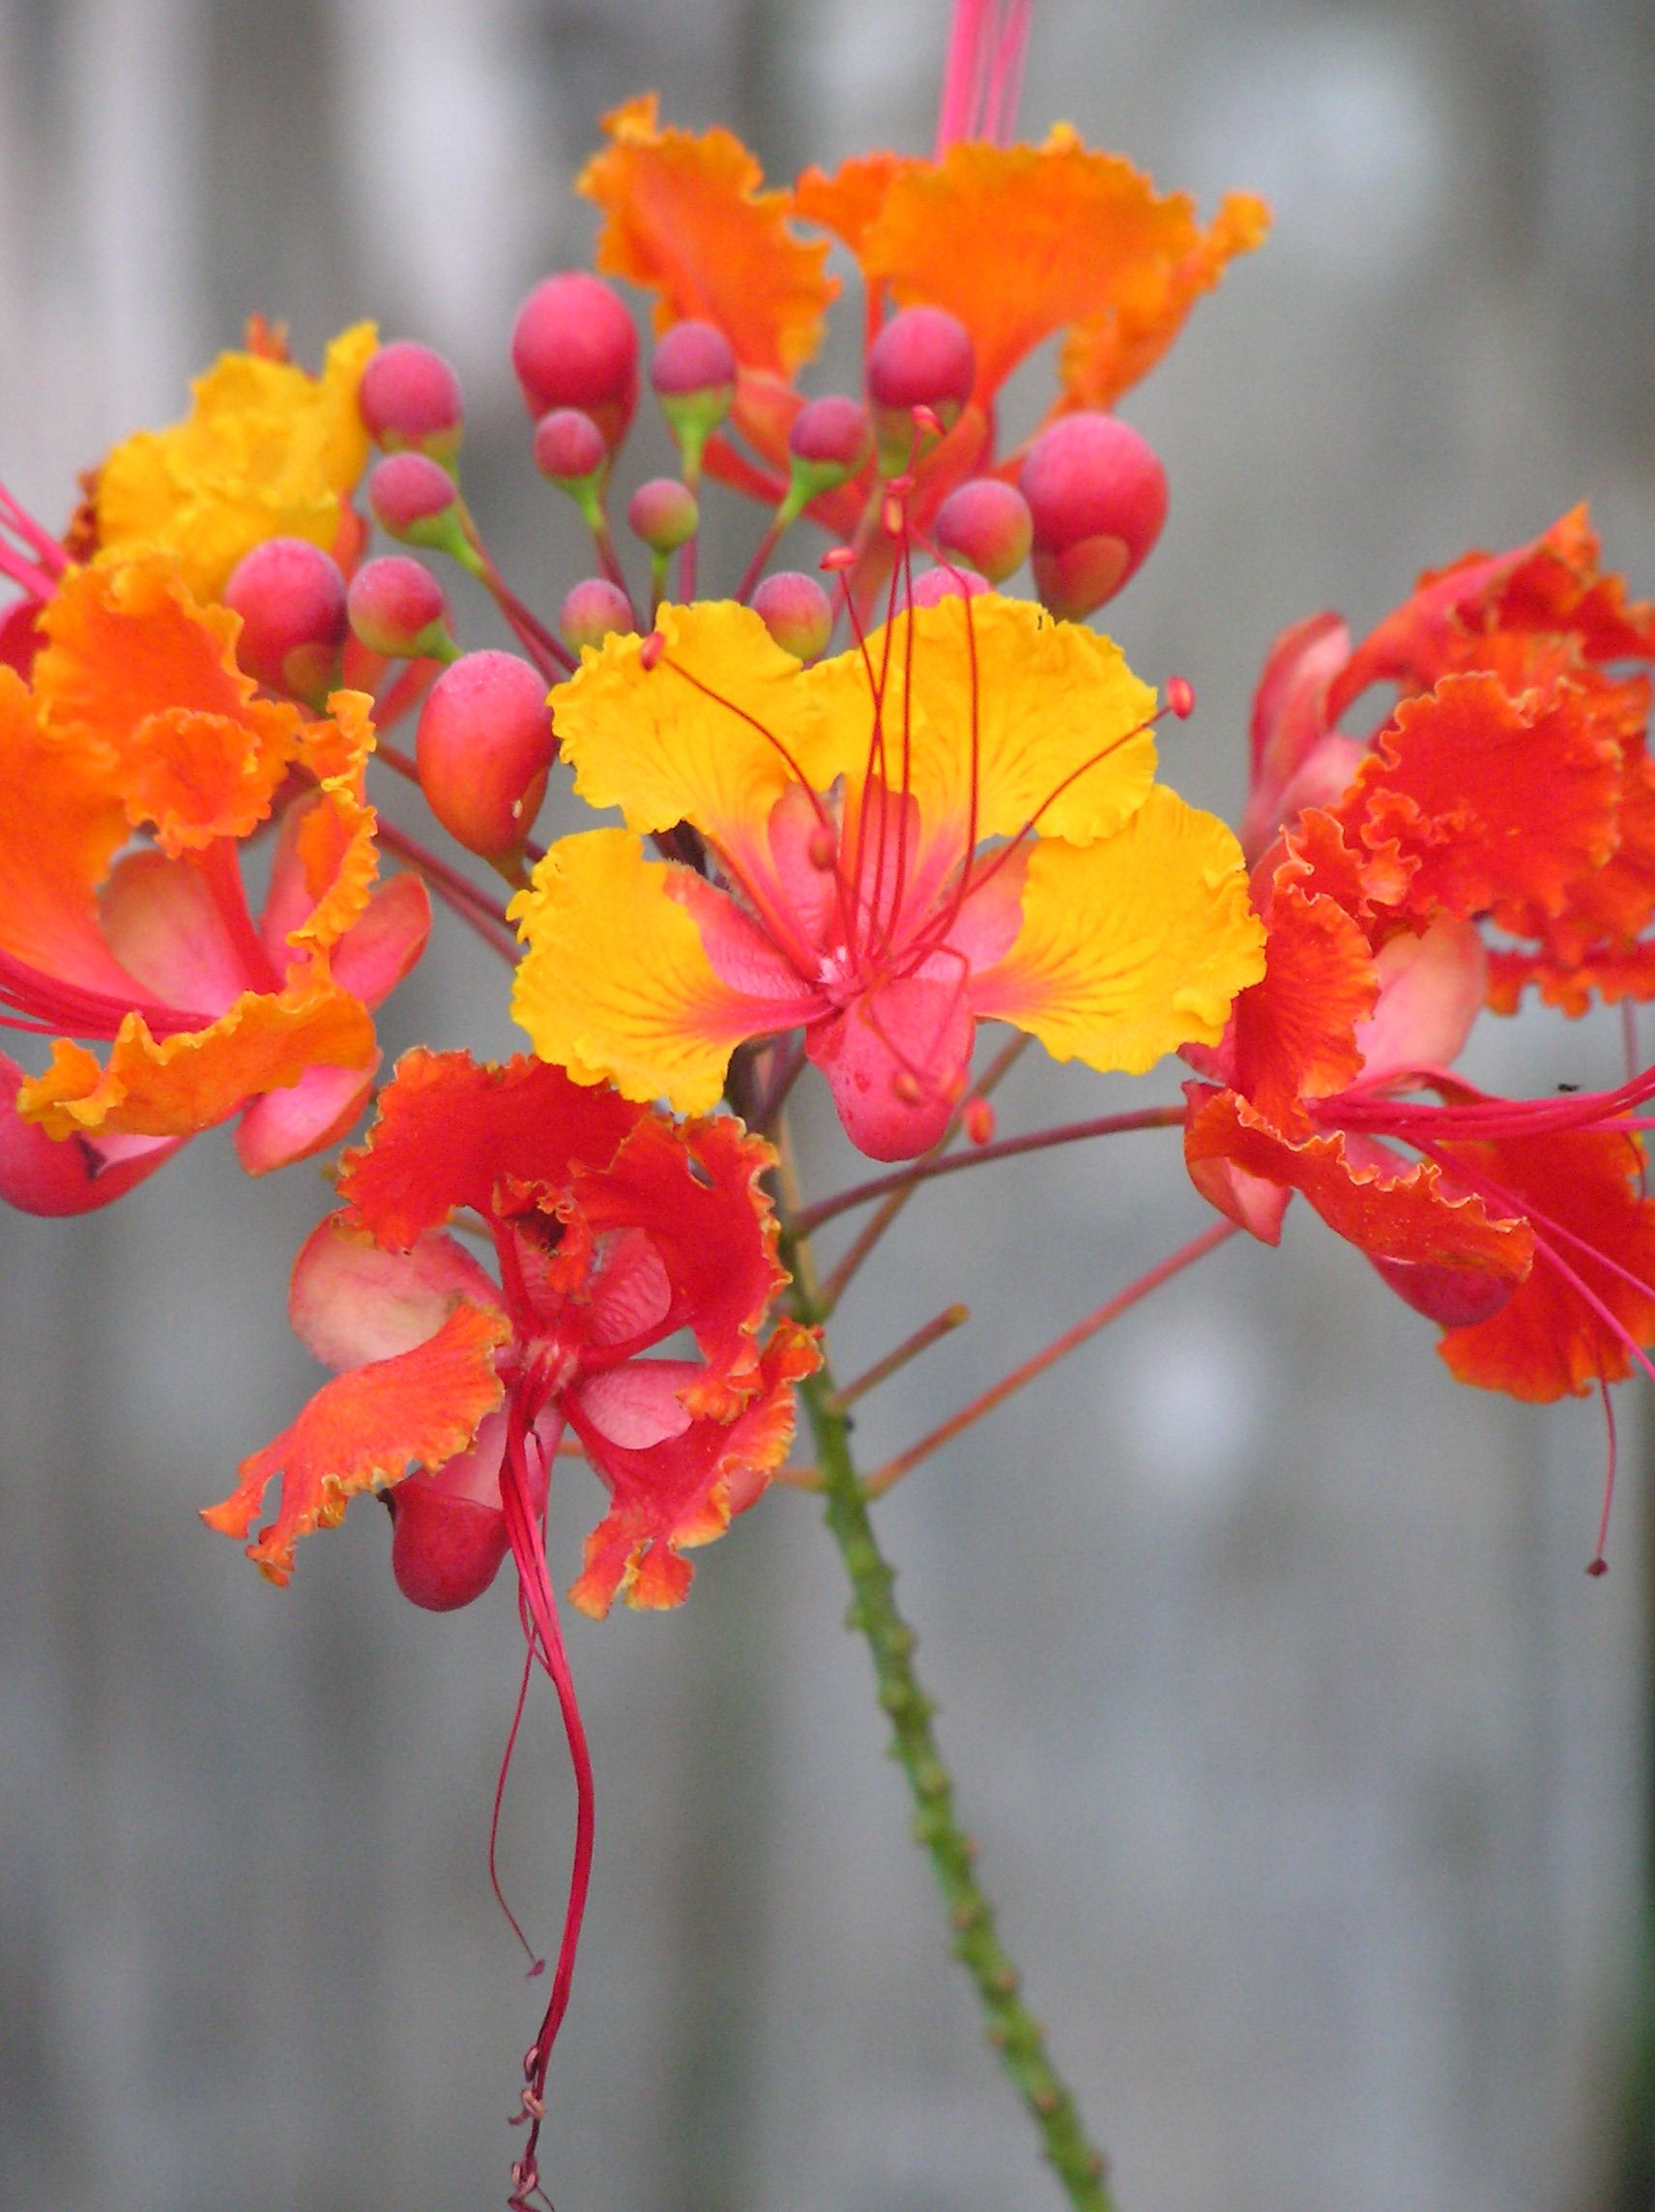 Cool Looking Plants Pride Of Barbados My Mom Has One Of These In Her Cactus